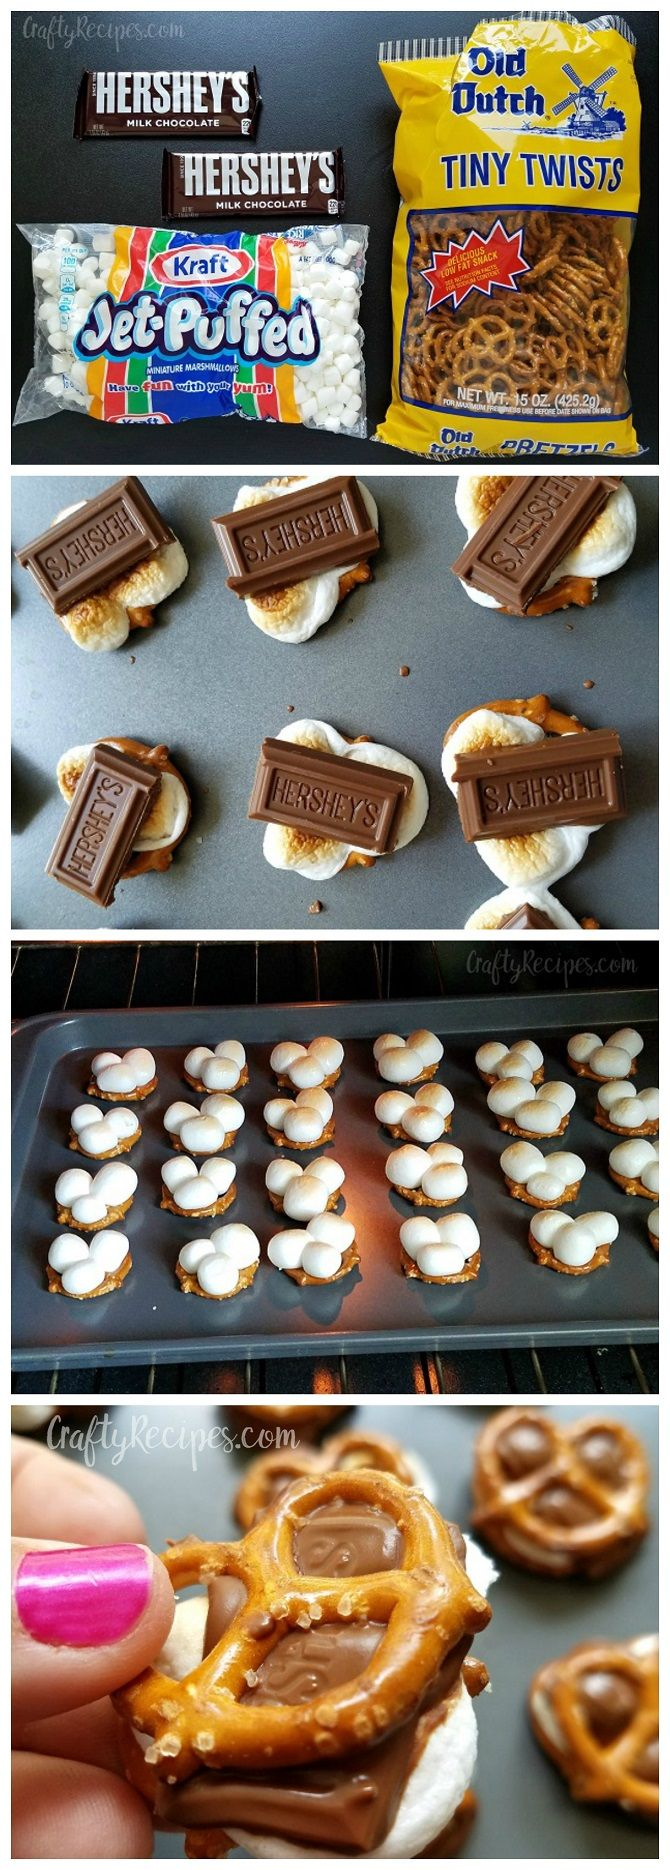 These s'more pretzel bites were AMAZING! Salty and sweet at the same time. Saving this recipe for a summer dessert                                                                                                                                                                                 More